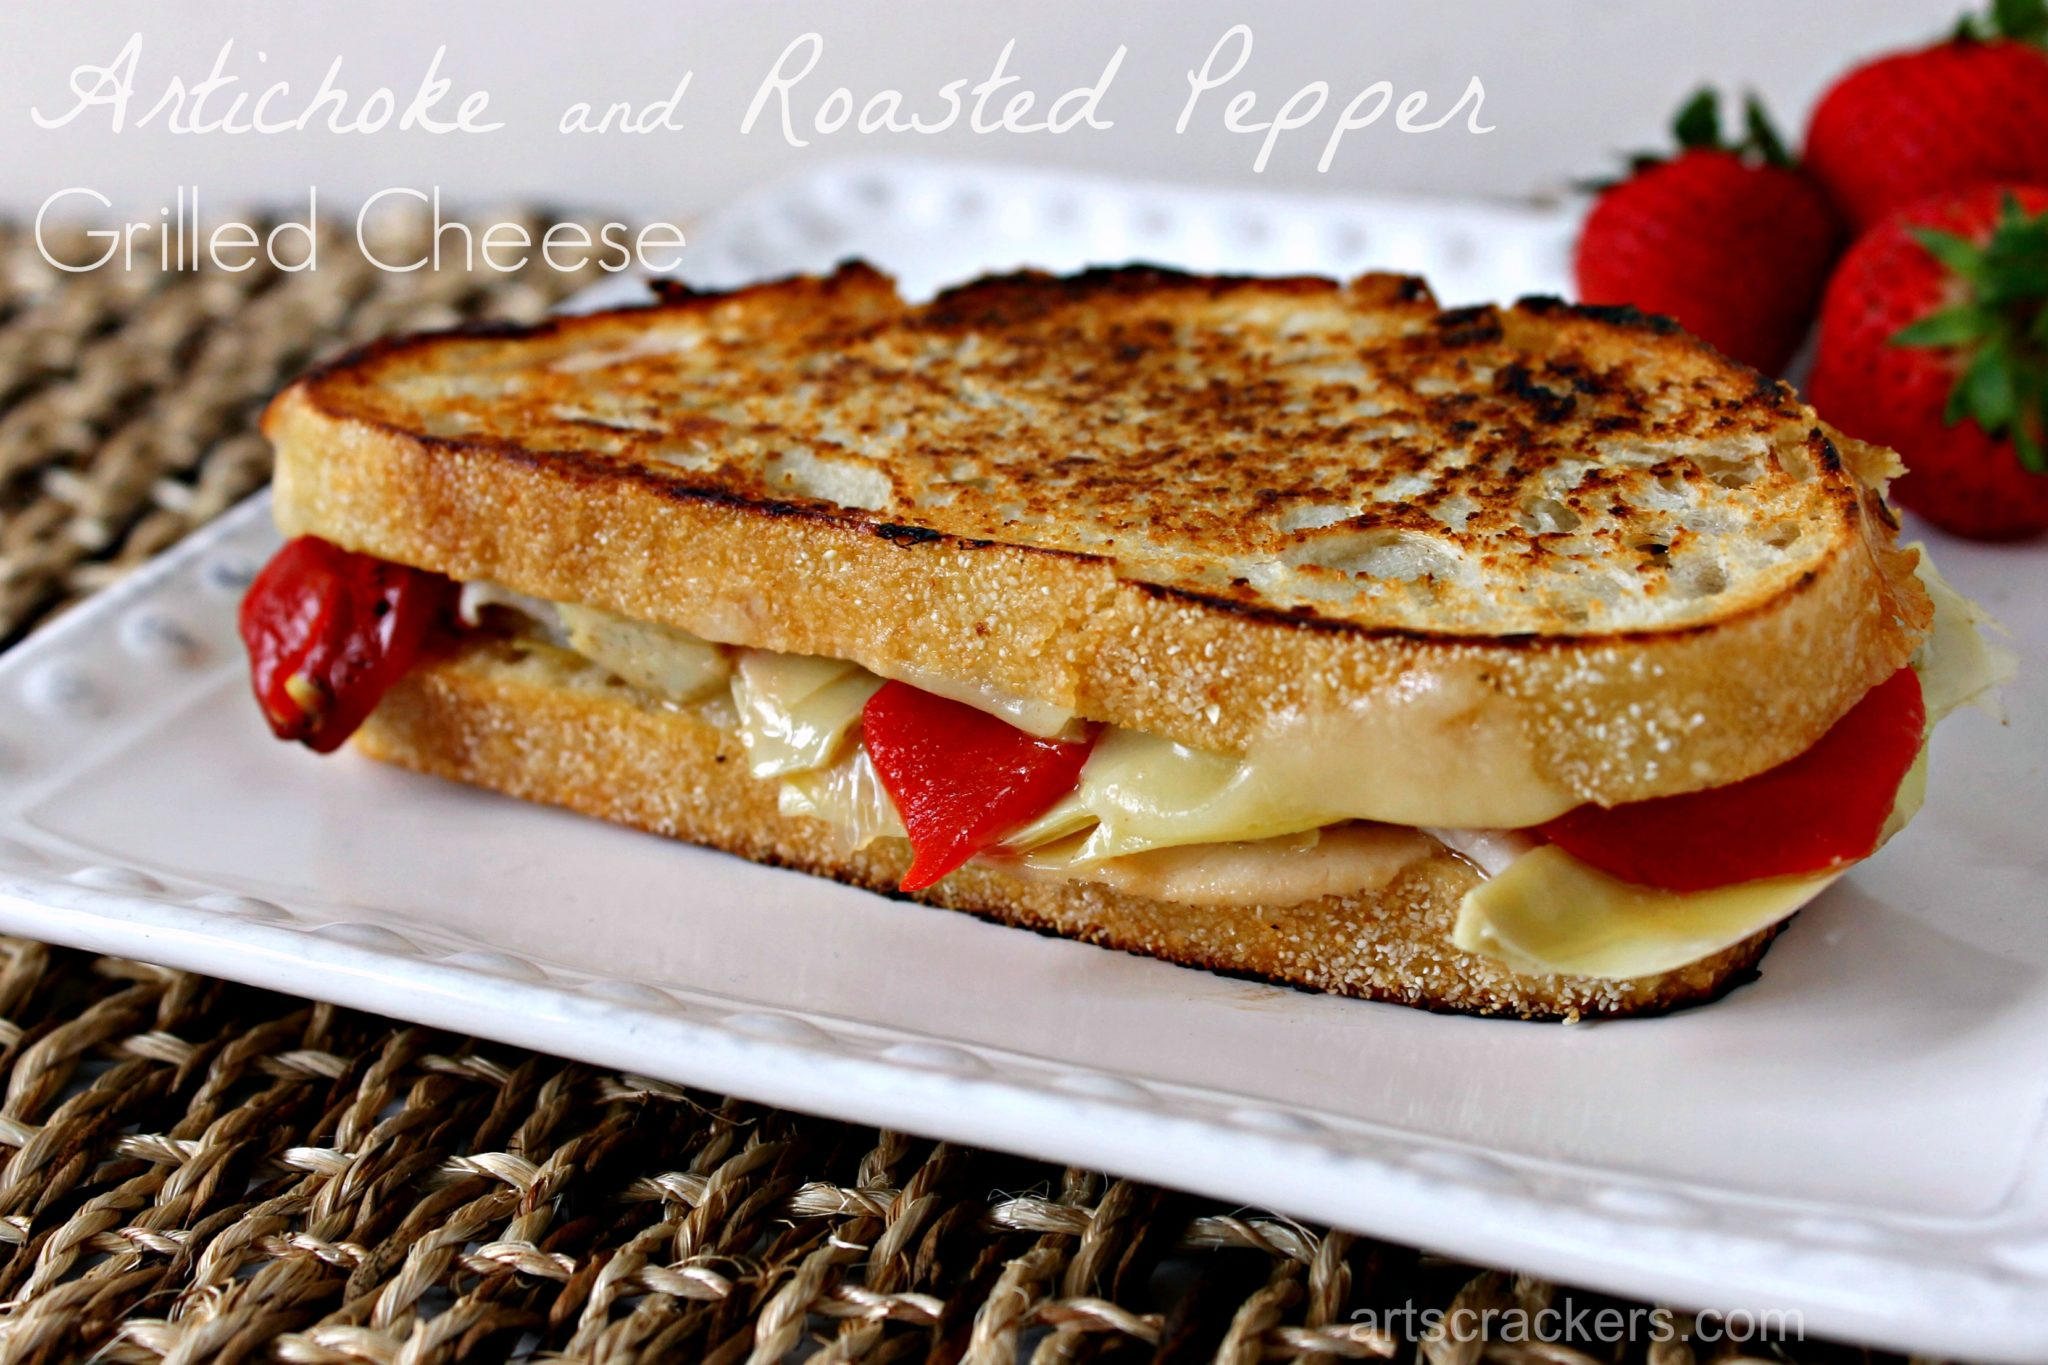 Artichoke and Roasted Pepper Grilled Cheese